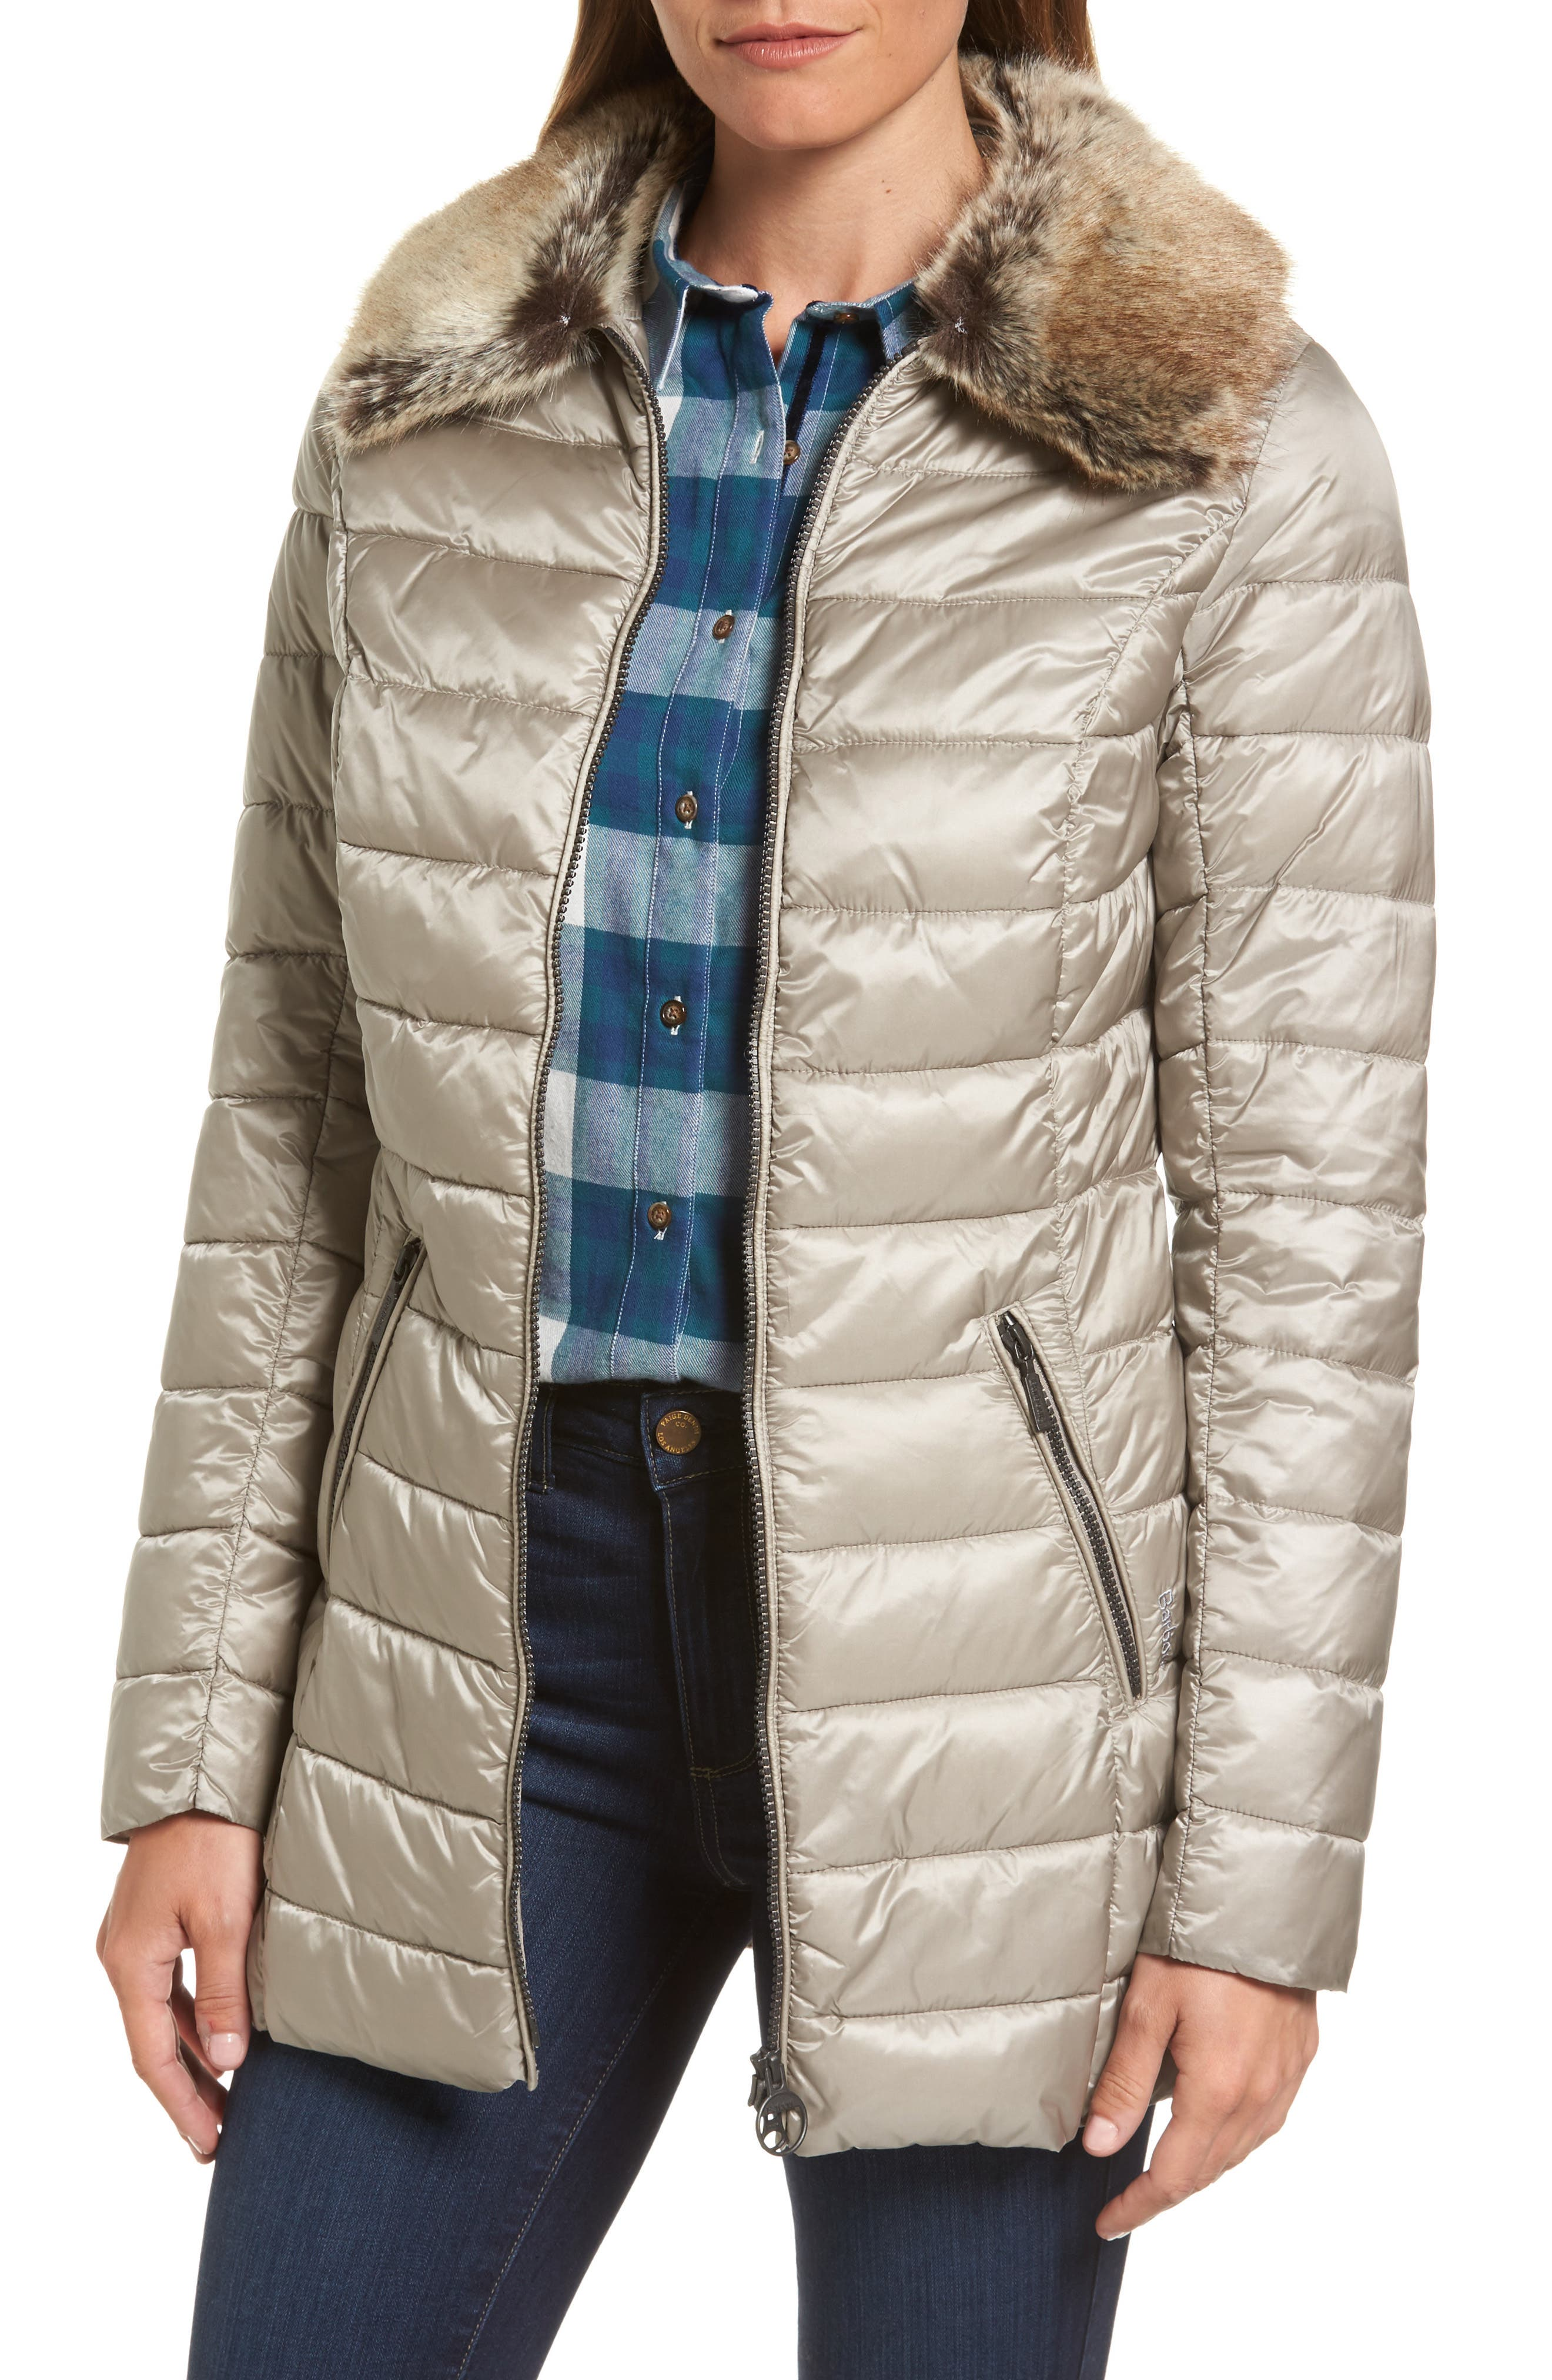 Main Image - Barbour Rambleton Water Resistant Quilted Jacket with Faux Fur Collar